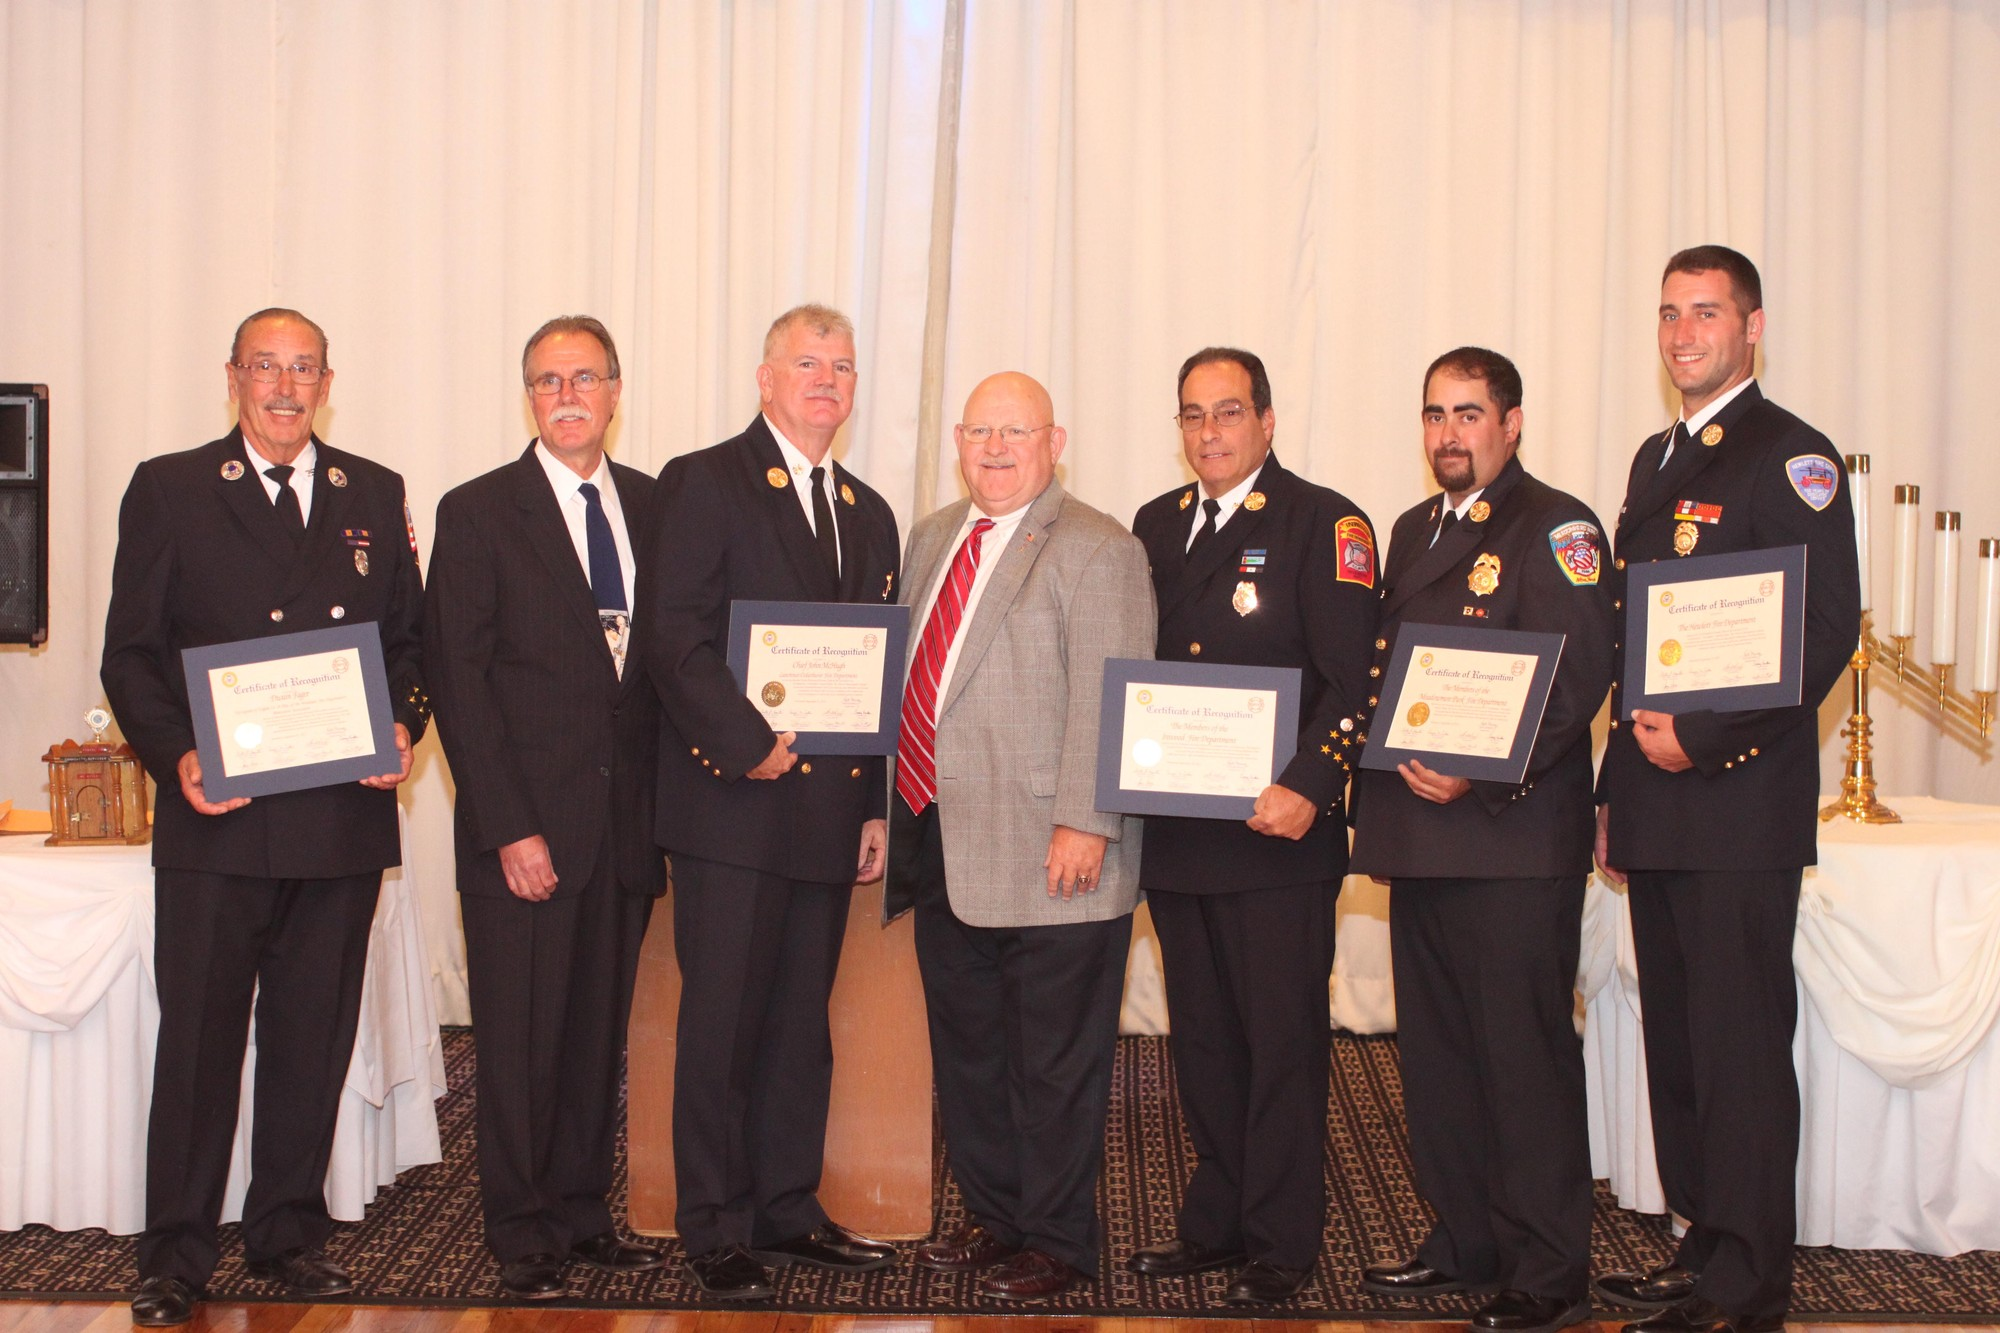 Photos by Skyler Kessler/Herald